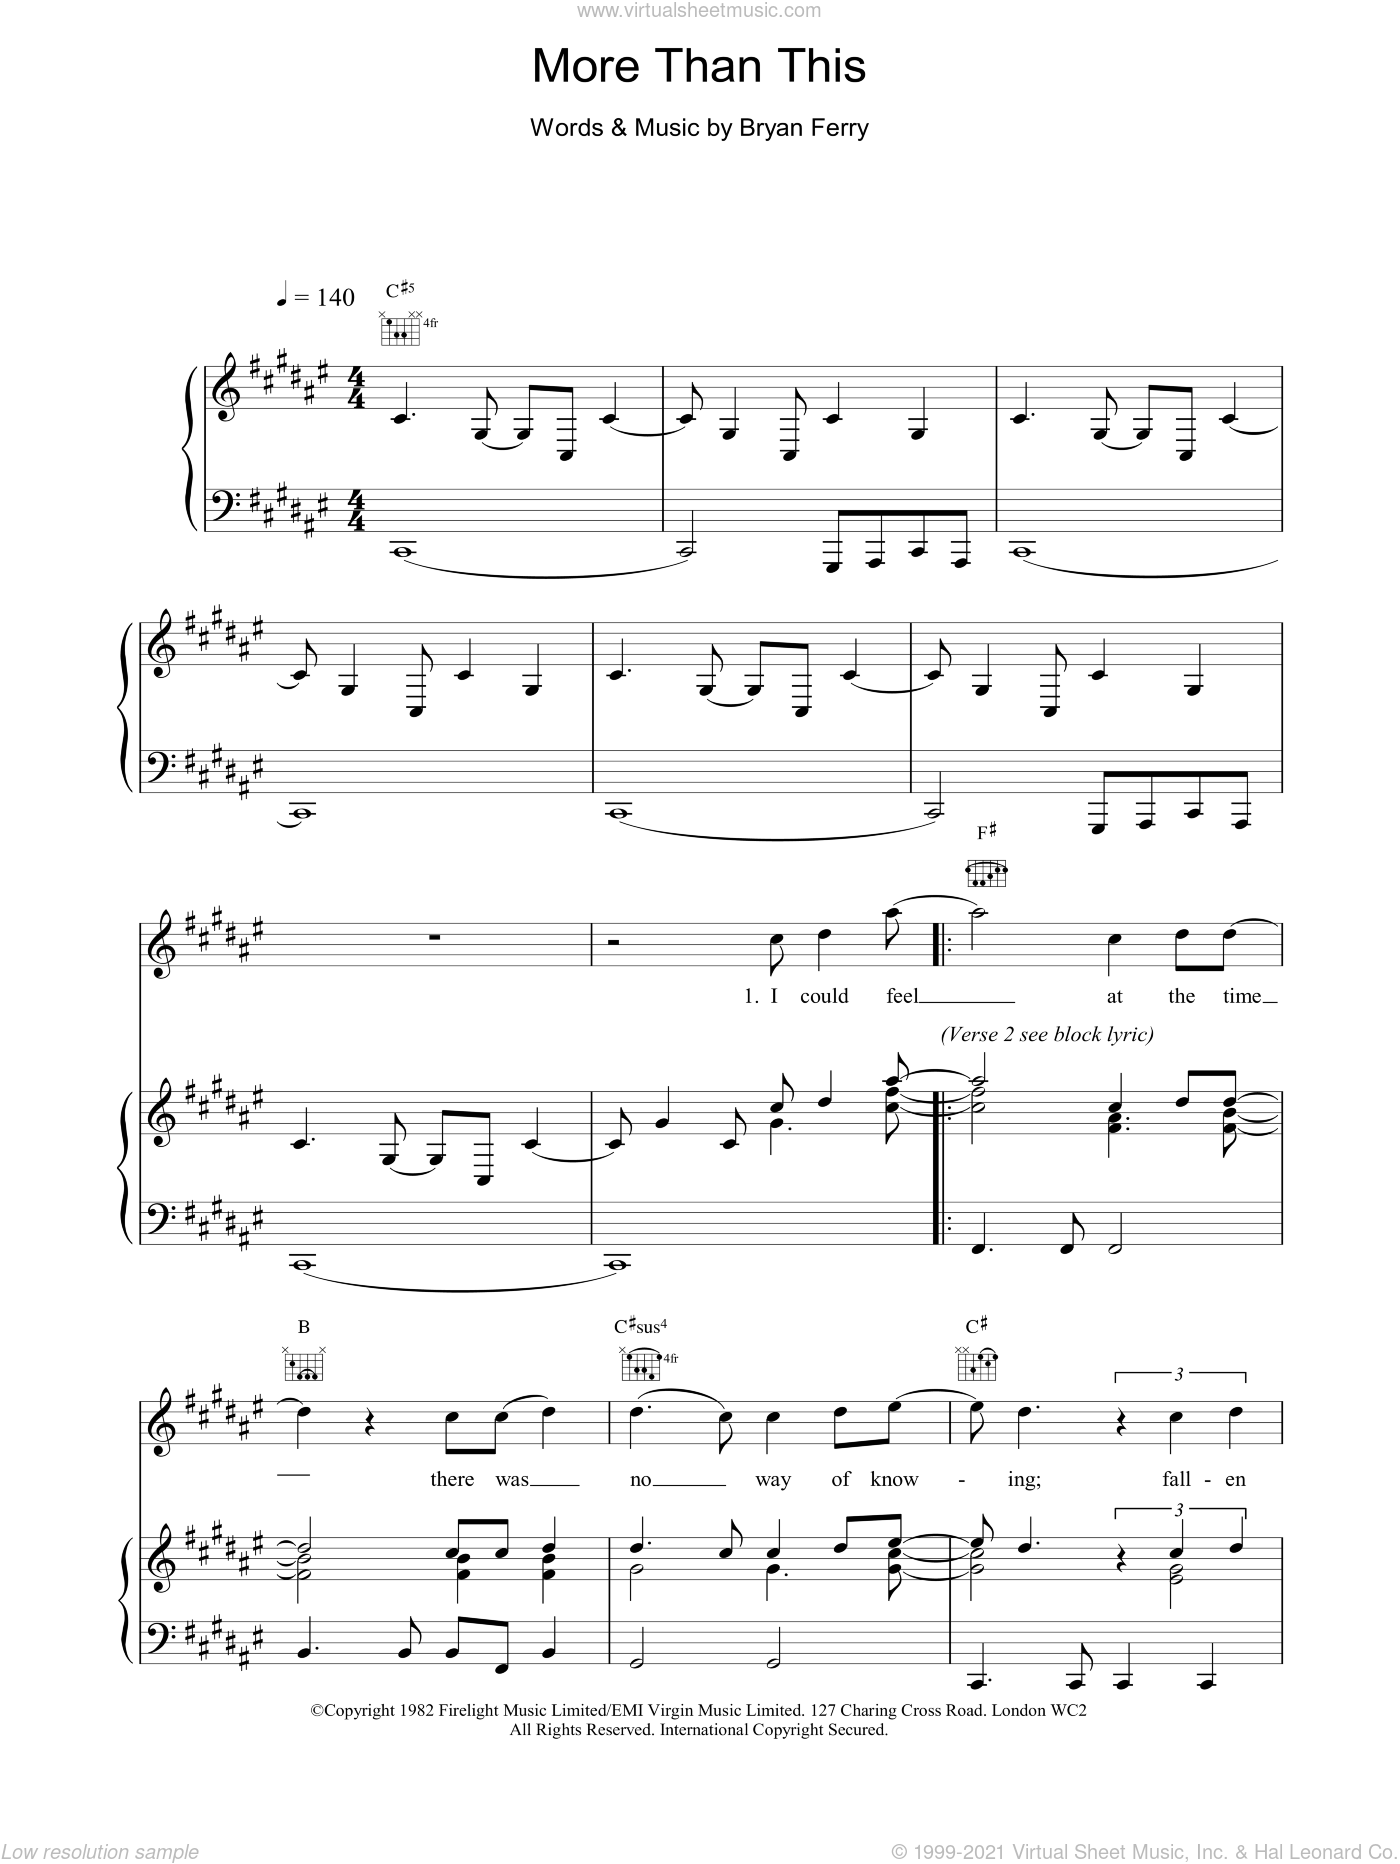 More Than This sheet music for voice, piano or guitar by Bryan Ferry